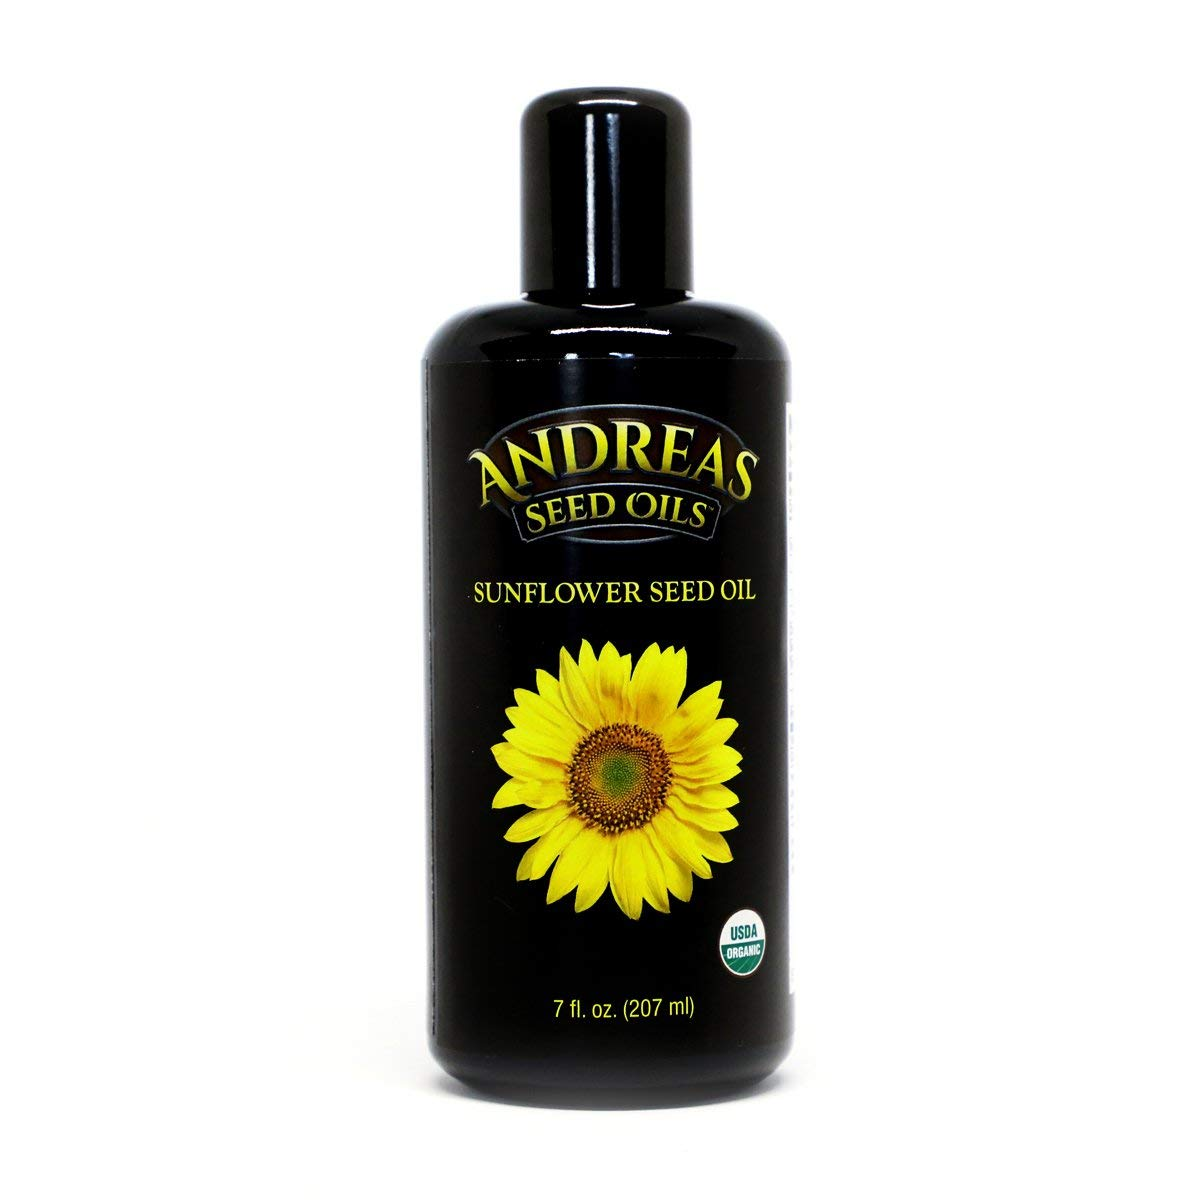 Andreas Seed Oils - Sunflower Seed Oil - Cold pressed from USDA organic, Non GMO seeds. by Andreas Seed Oils